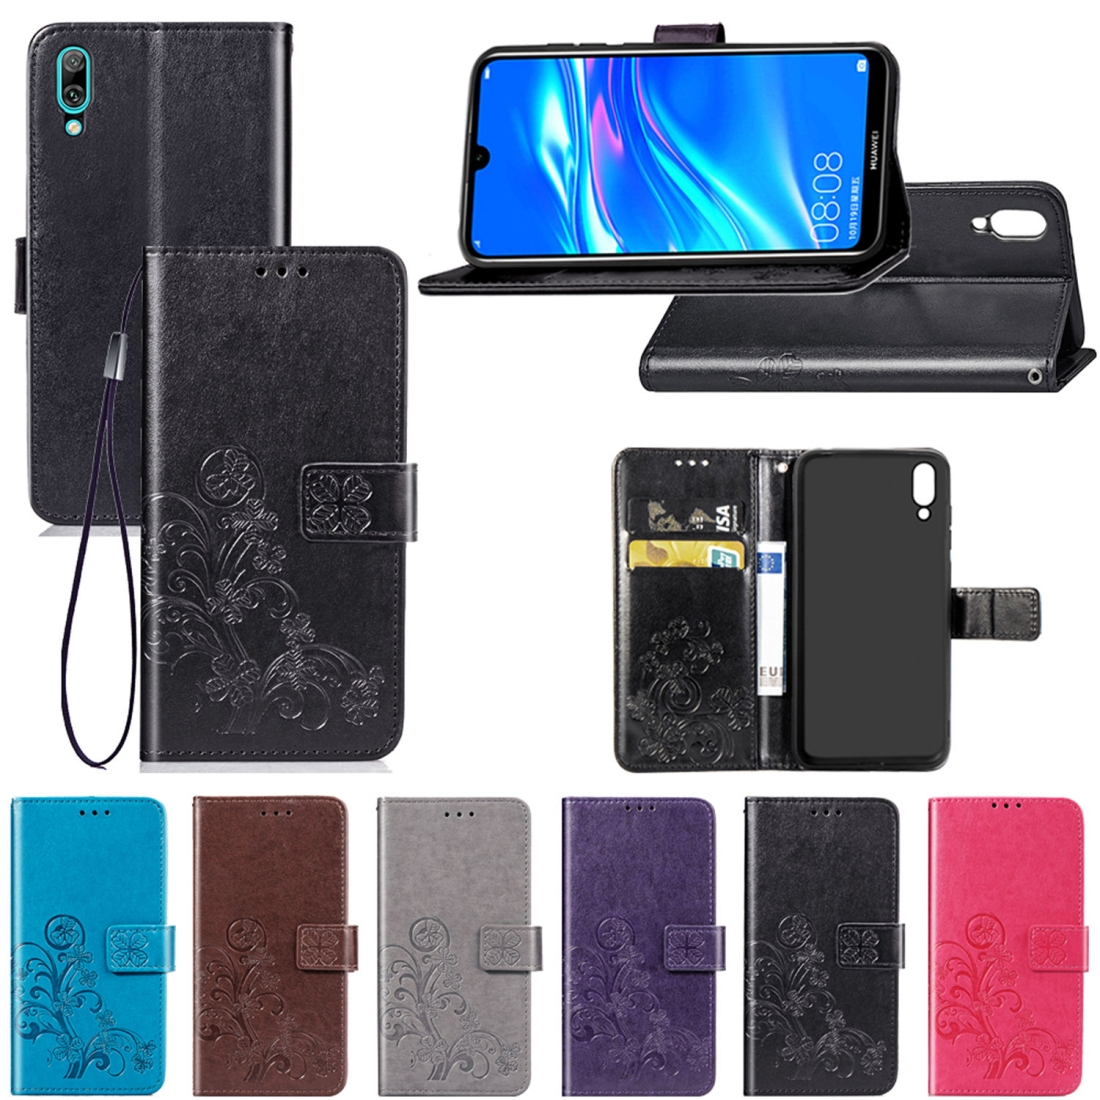 Lucky Clover Pressed Flowers Pattern Leather Case for Huawei Enjoy 9 with Holder & Card Slots & Wallet & Hand Strap (Blue)